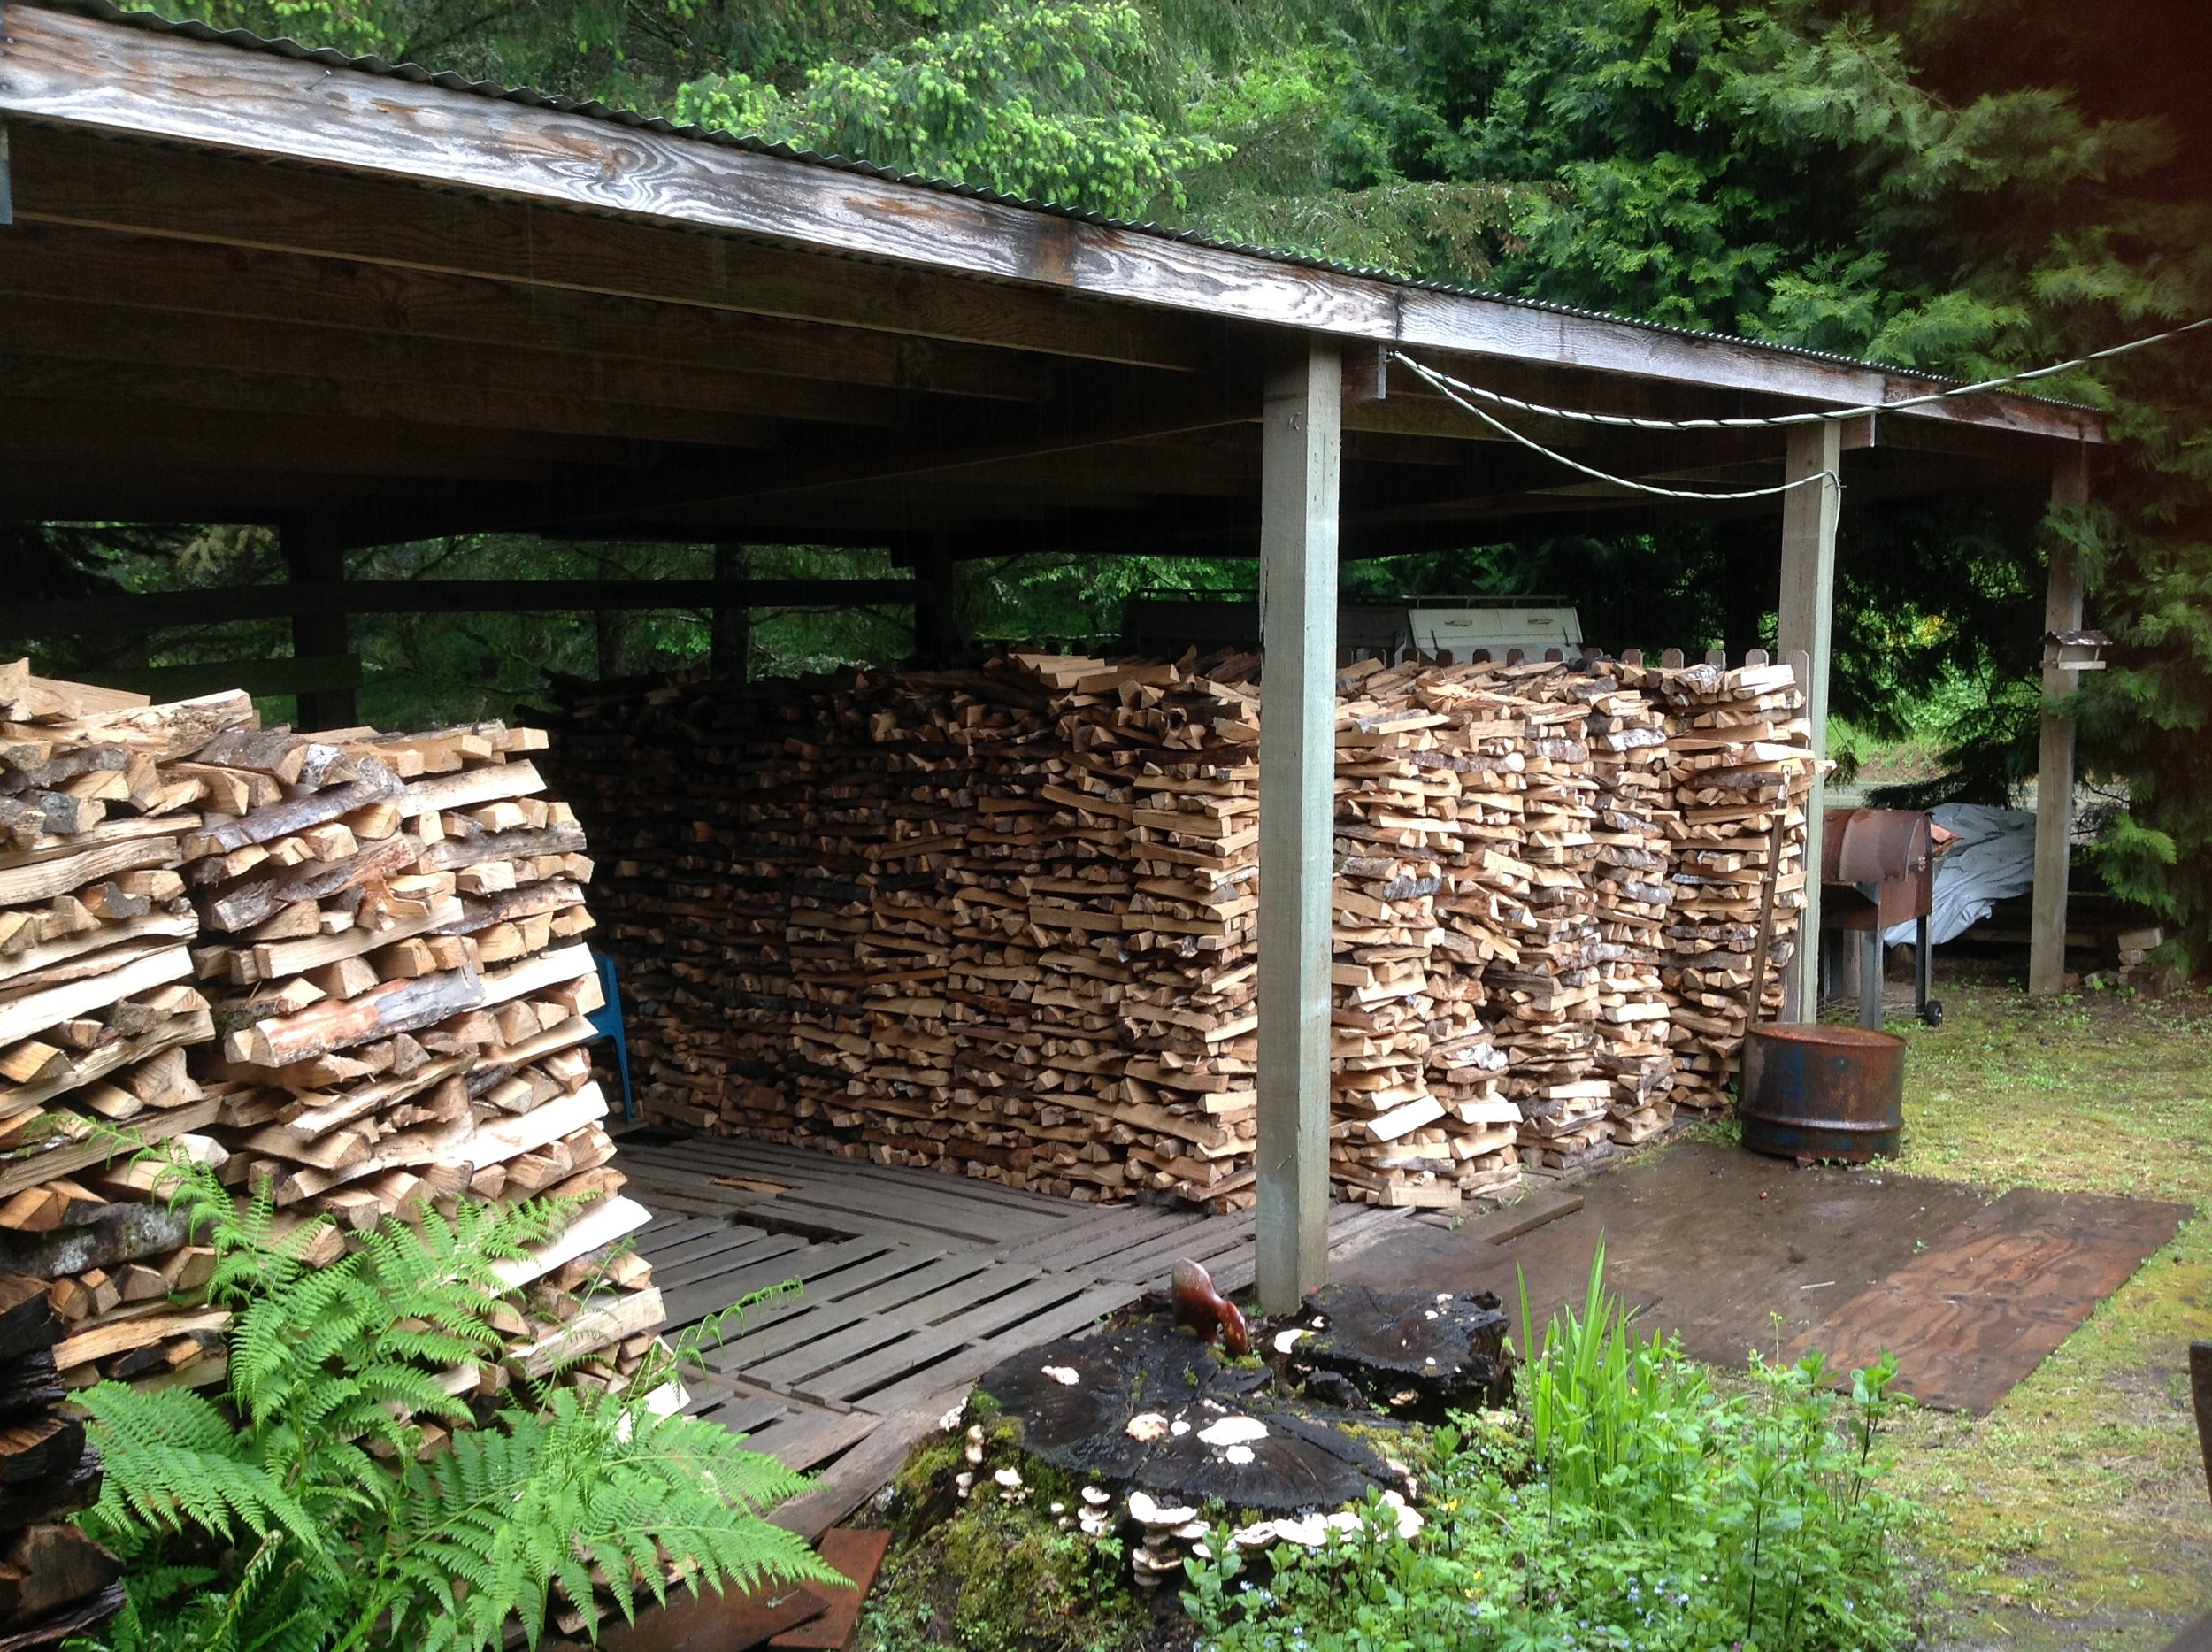 The firing may take around 100 hours.  The entire time it must be stoked around the clock.  This can take up to eight cords of wood.  The cooling period can take just as long before the kiln is ready to be unloaded.